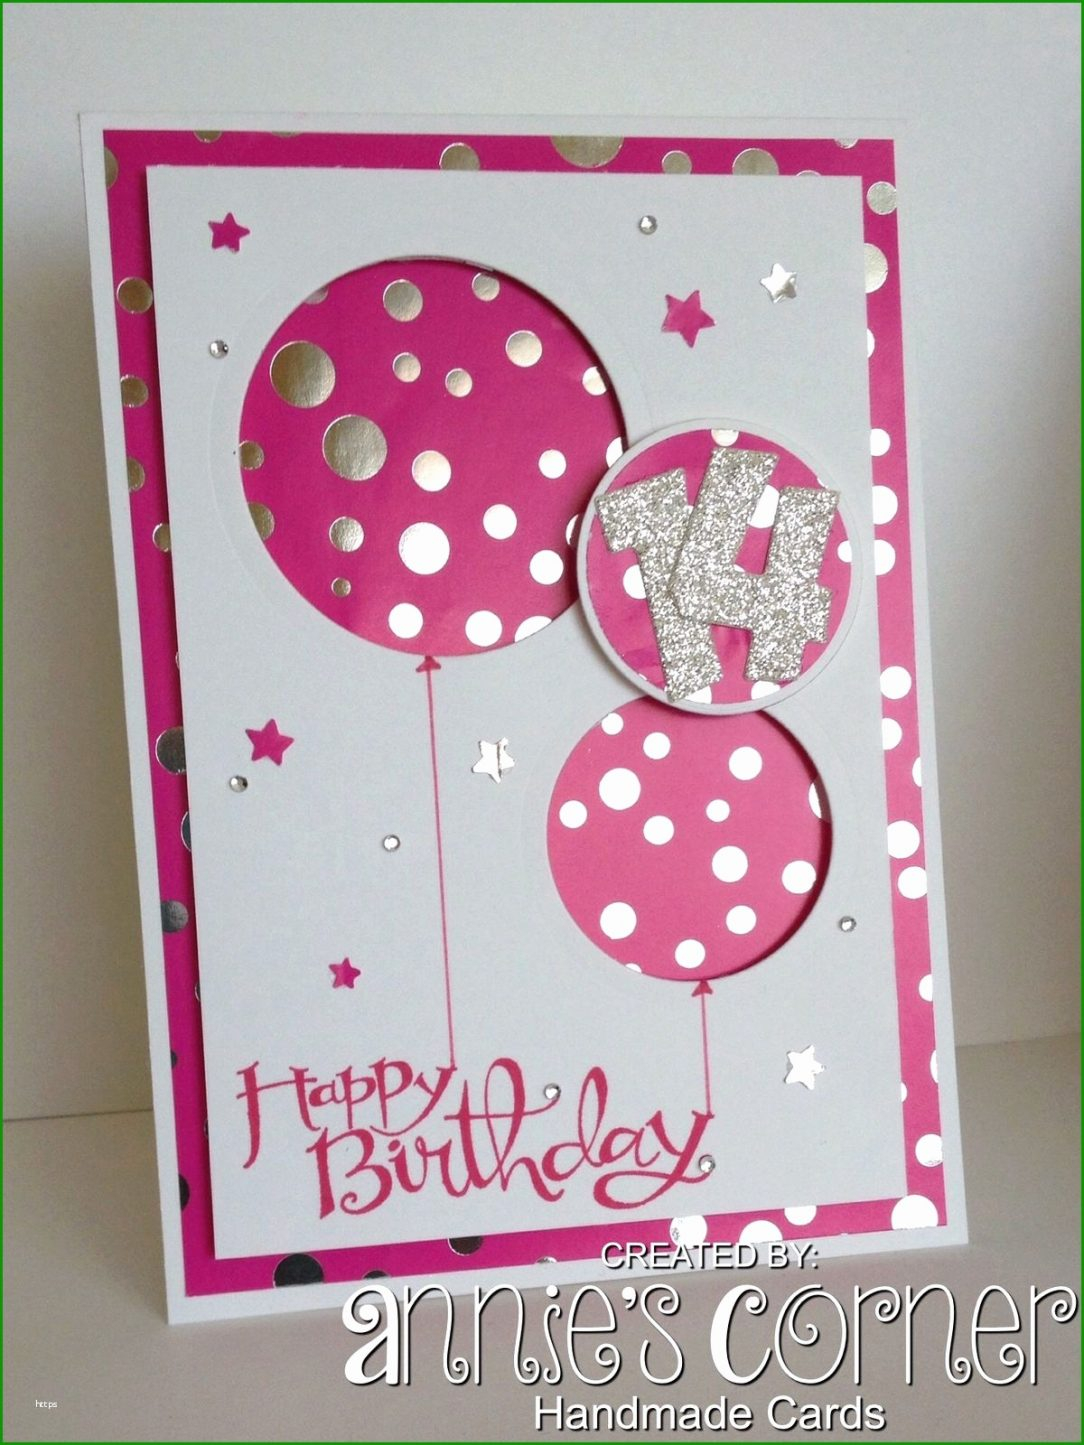 Handmade Birthday Invitation Cards Ideas 1 Year Old Birthday Invitation Cards One To Make Ideas For Envelopes